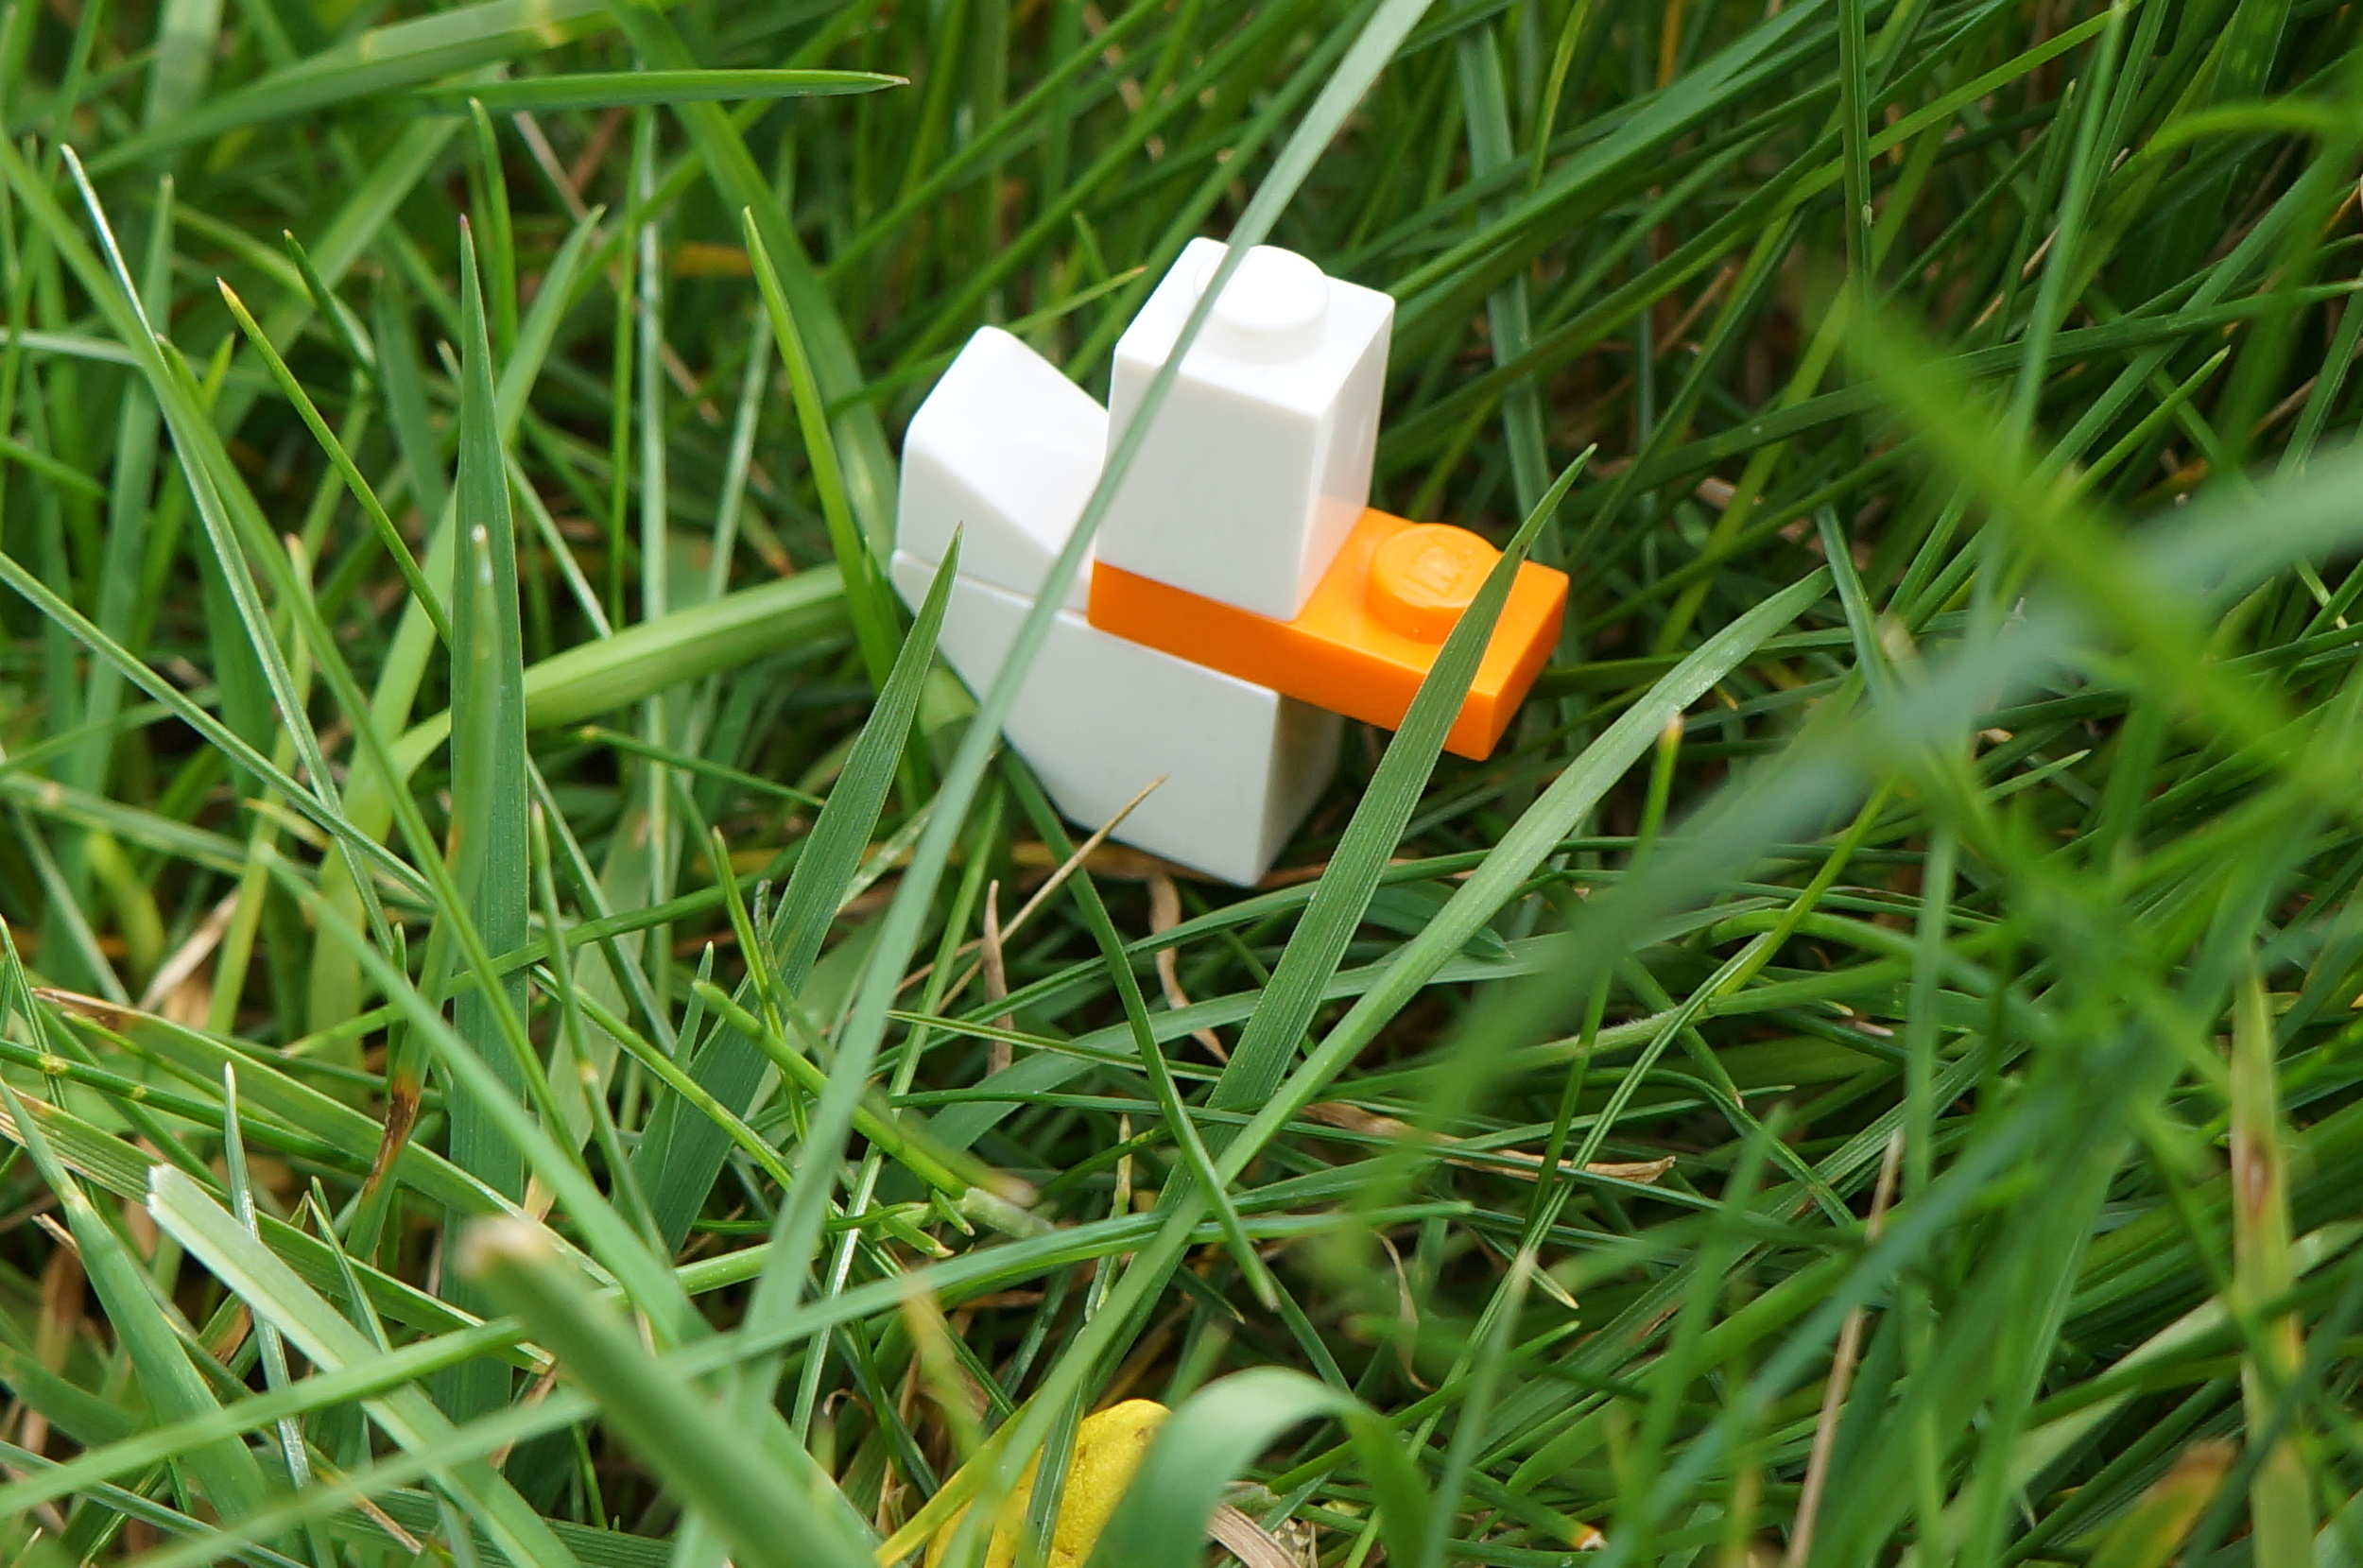 Close up view of a four-brick Lego duck in the grass. Photo ©Narjas Carrington